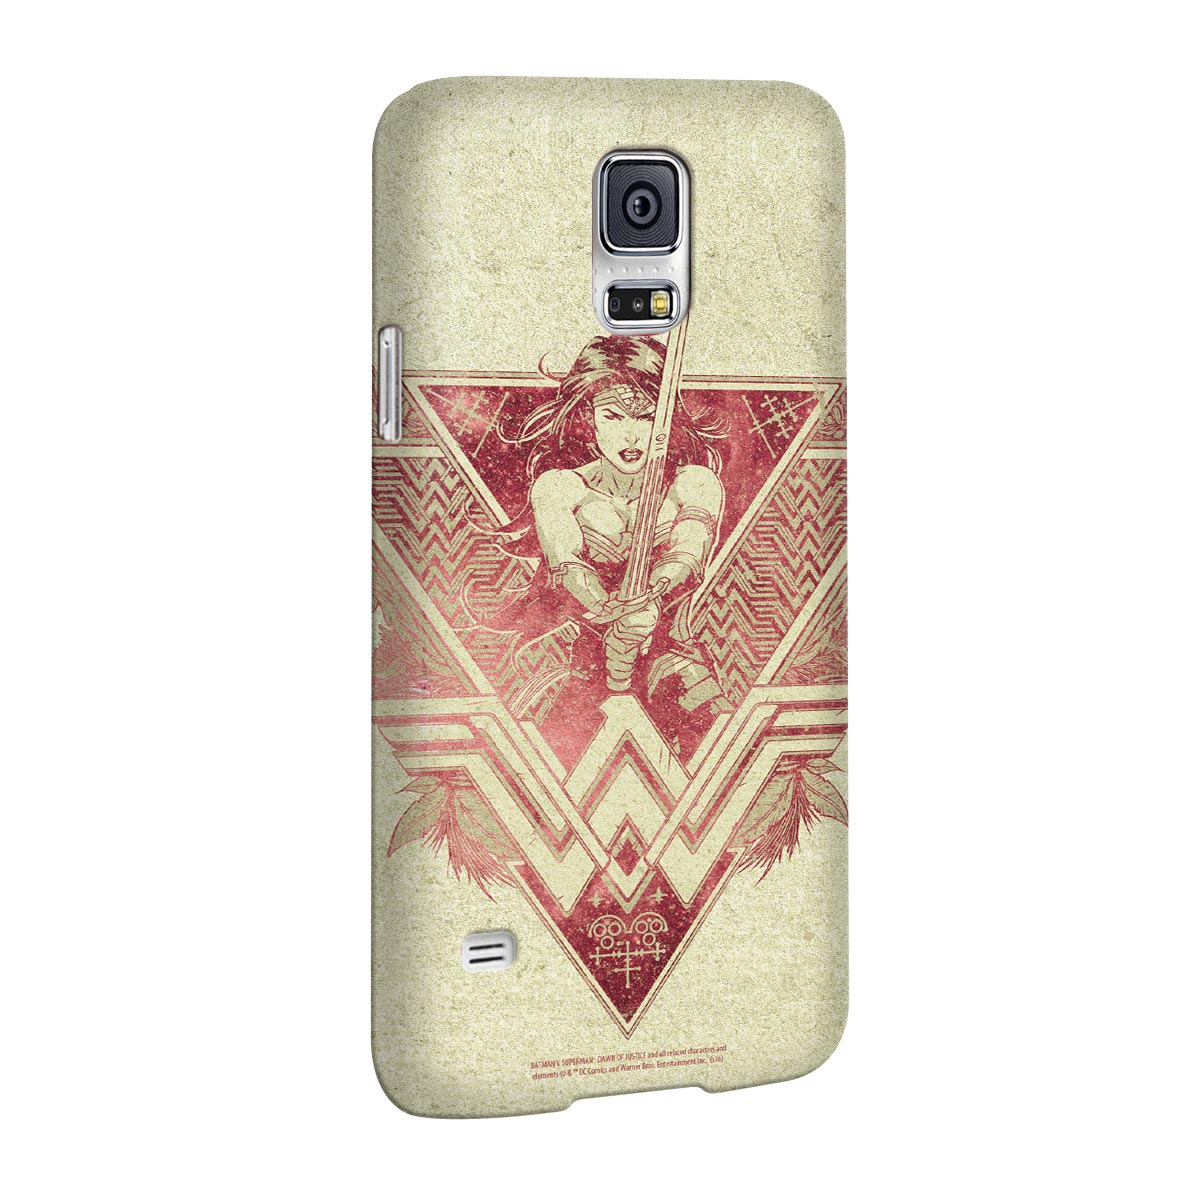 Capa para Samsung Galaxy S5 Wonder Woman Warrior